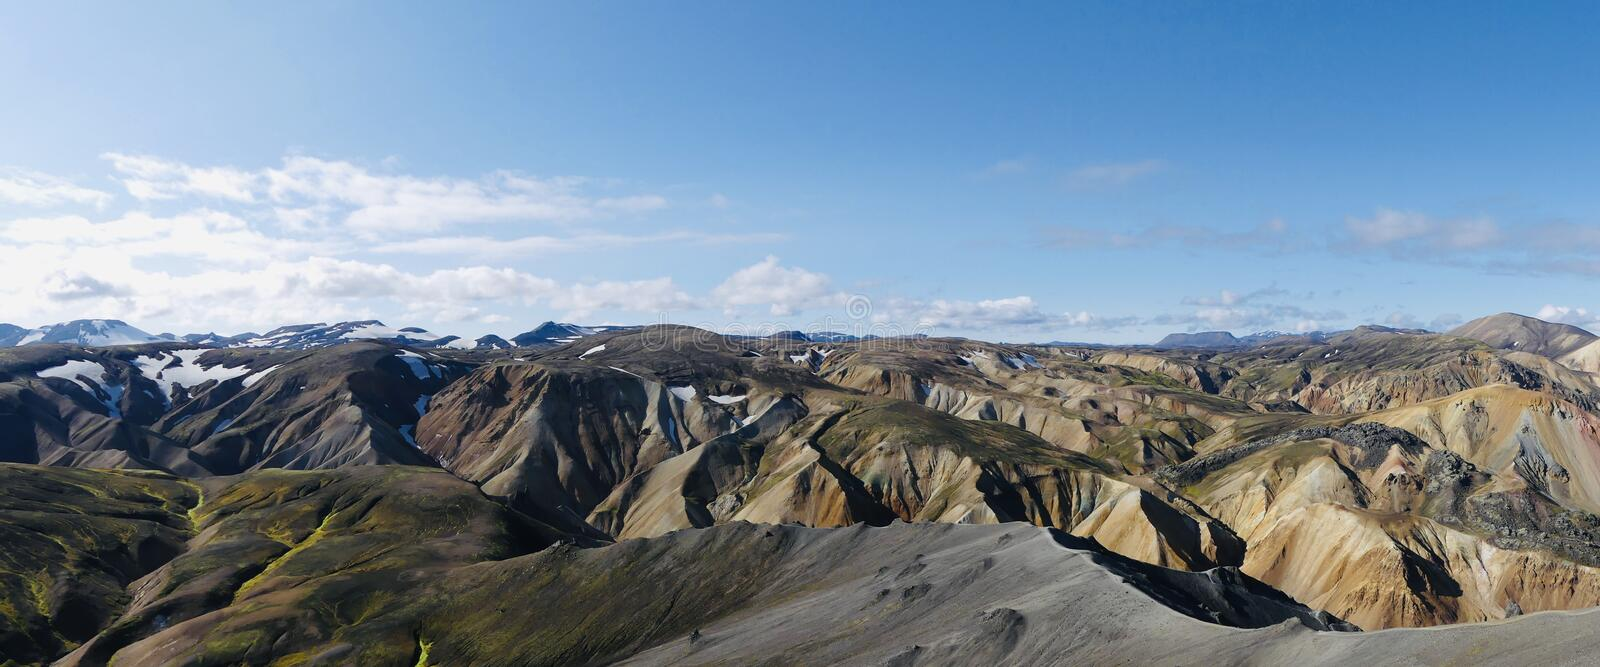 Landmannalaugar rainbow mountains in Iceland. View from Blahnúkur to the most beautiful places in the world - Rainbow mountains royalty free stock photos